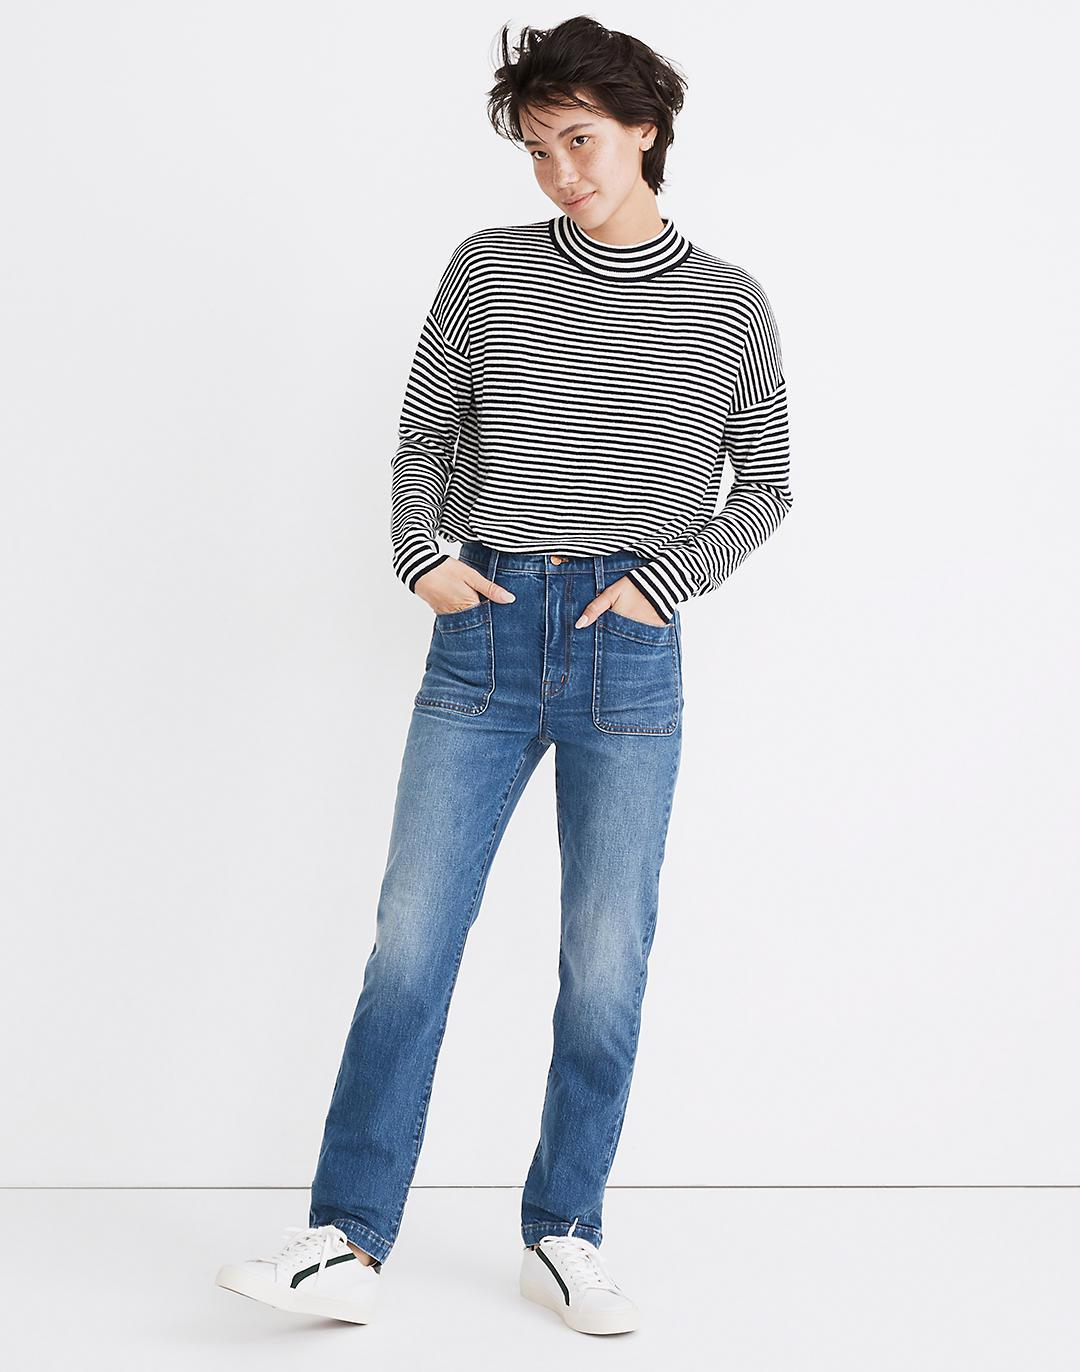 Classic Straight Full-Length Jeans in Marfield Wash: Surplus Pocket Edition